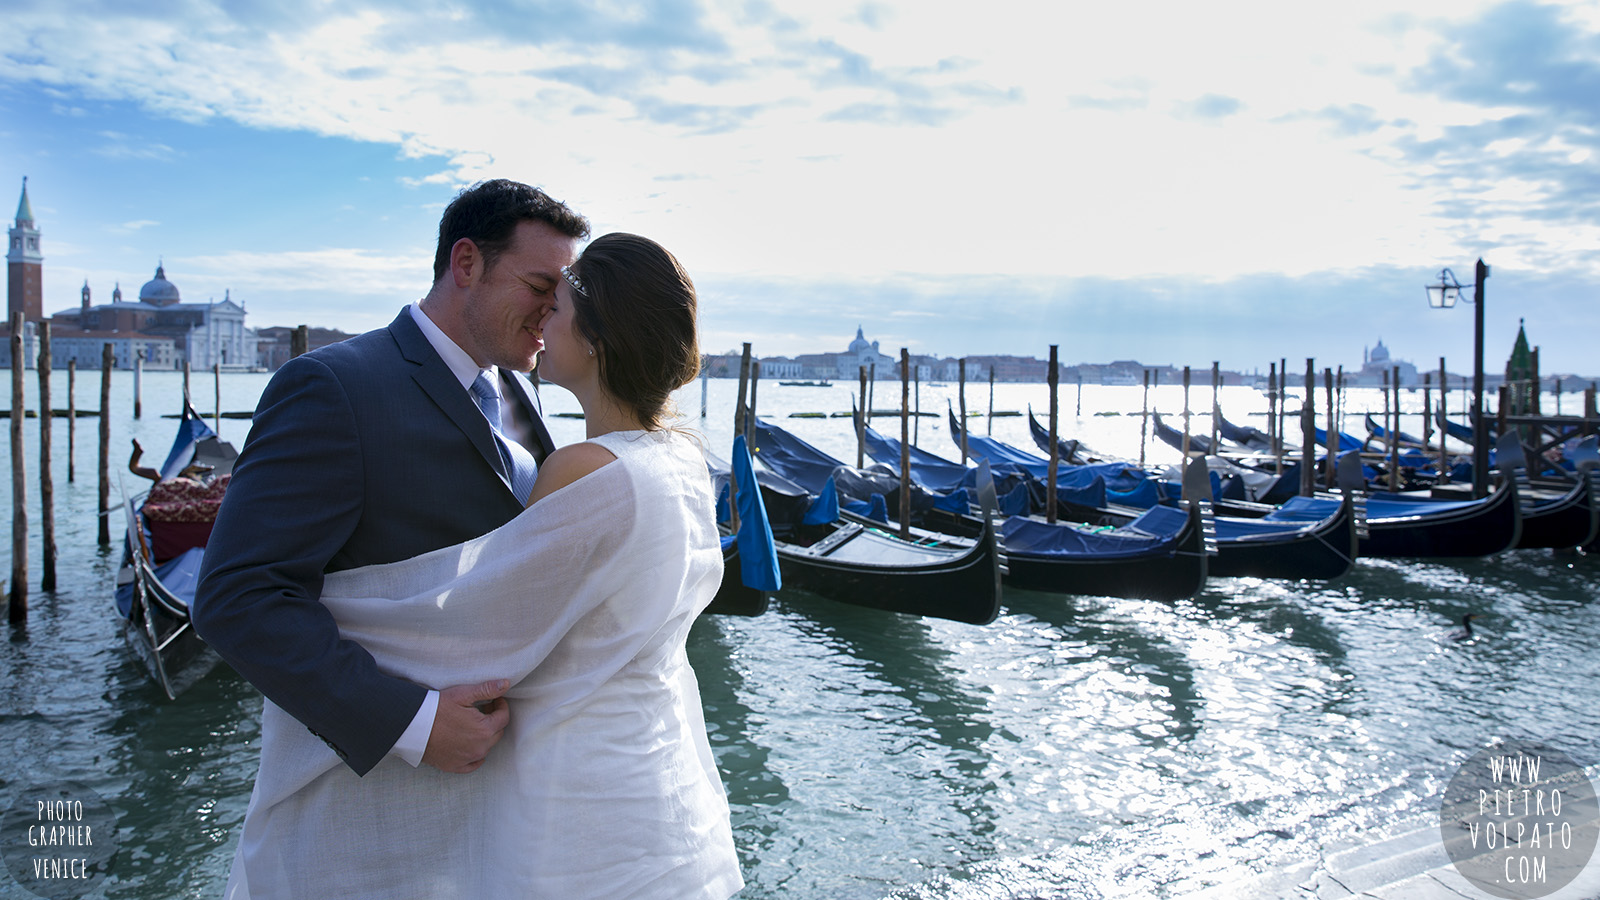 venice wedding photographer honeymoon photoshoot for couple romantic vacation tour